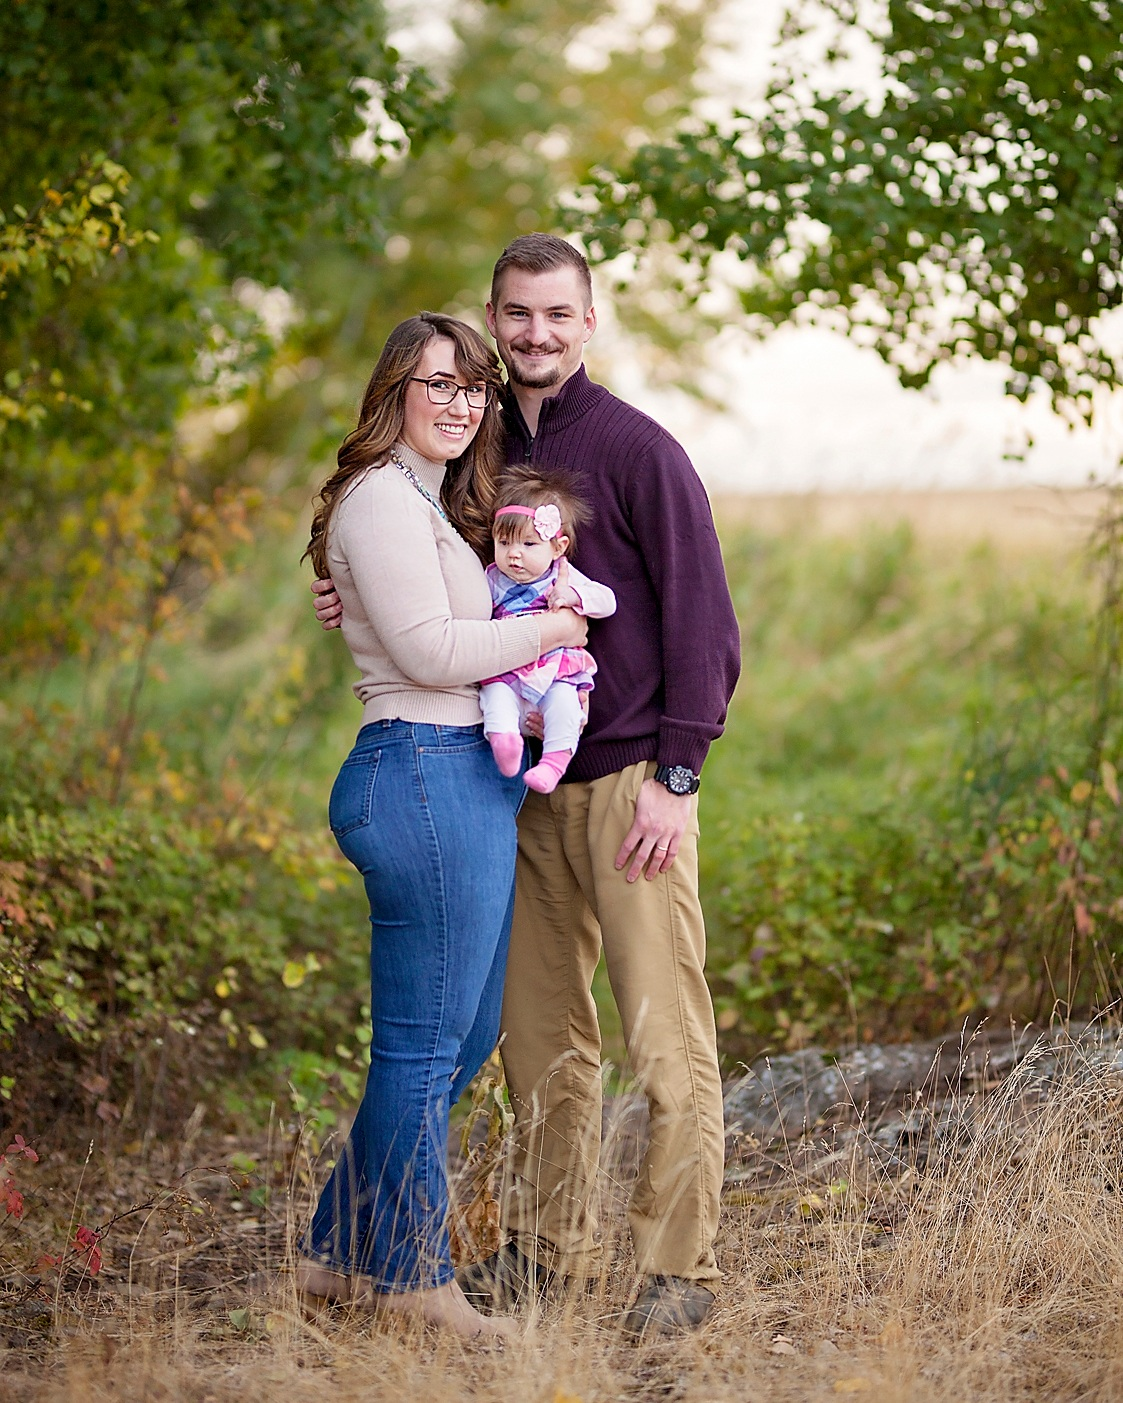 Spokane family pictures in nature by Nate Robinson Photography